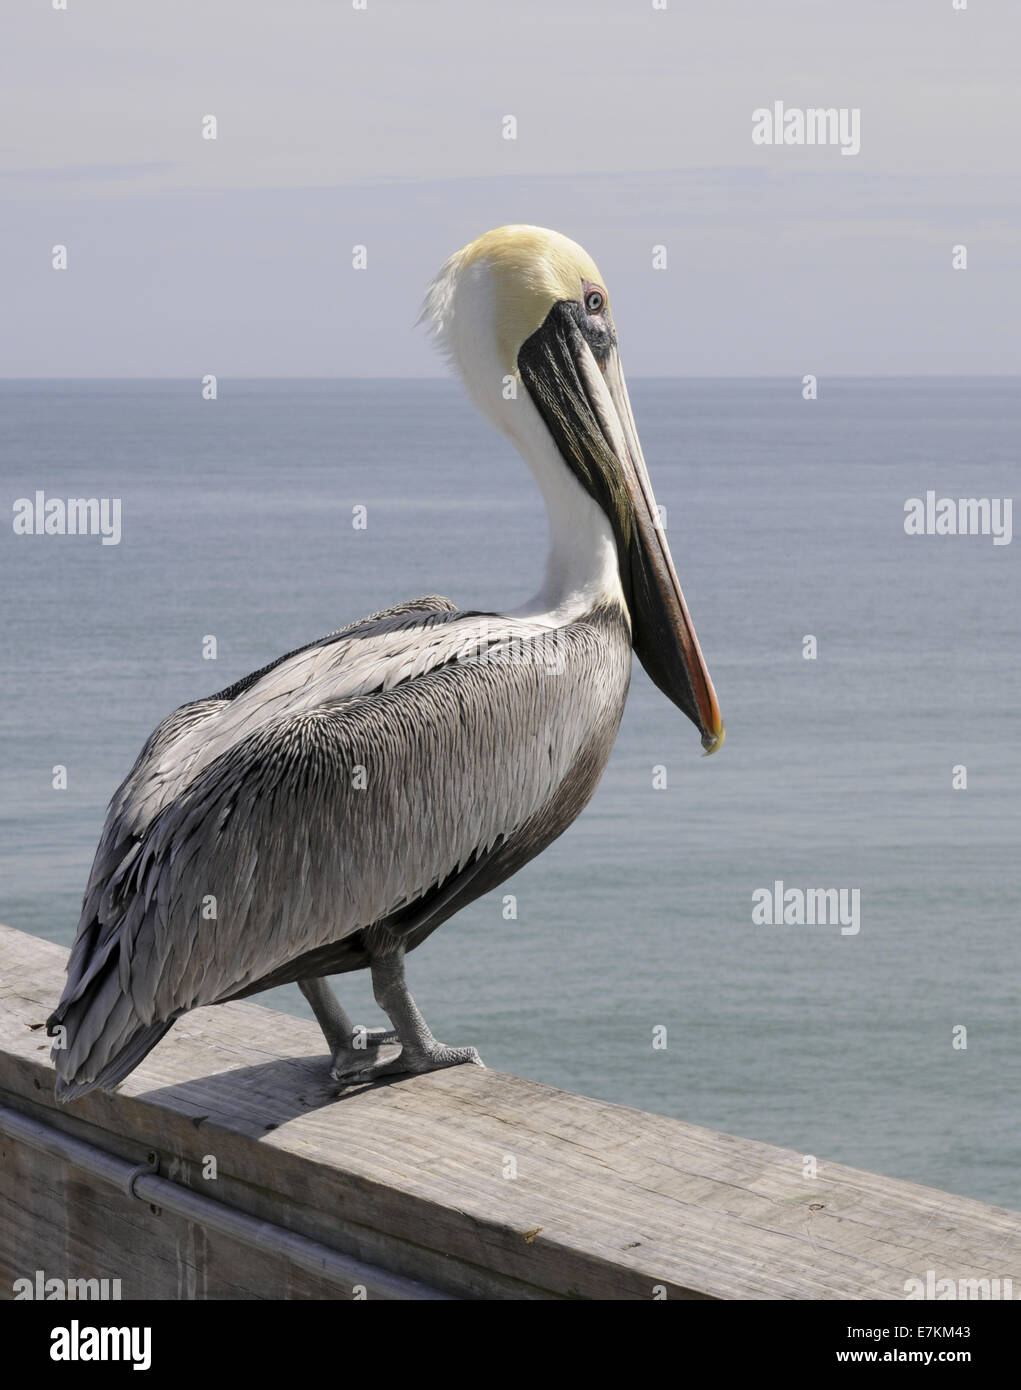 Pelican standing on a pier railing overlooking the Atlantic Ocean at Cocoa Beach, Florida USA Stock Photo